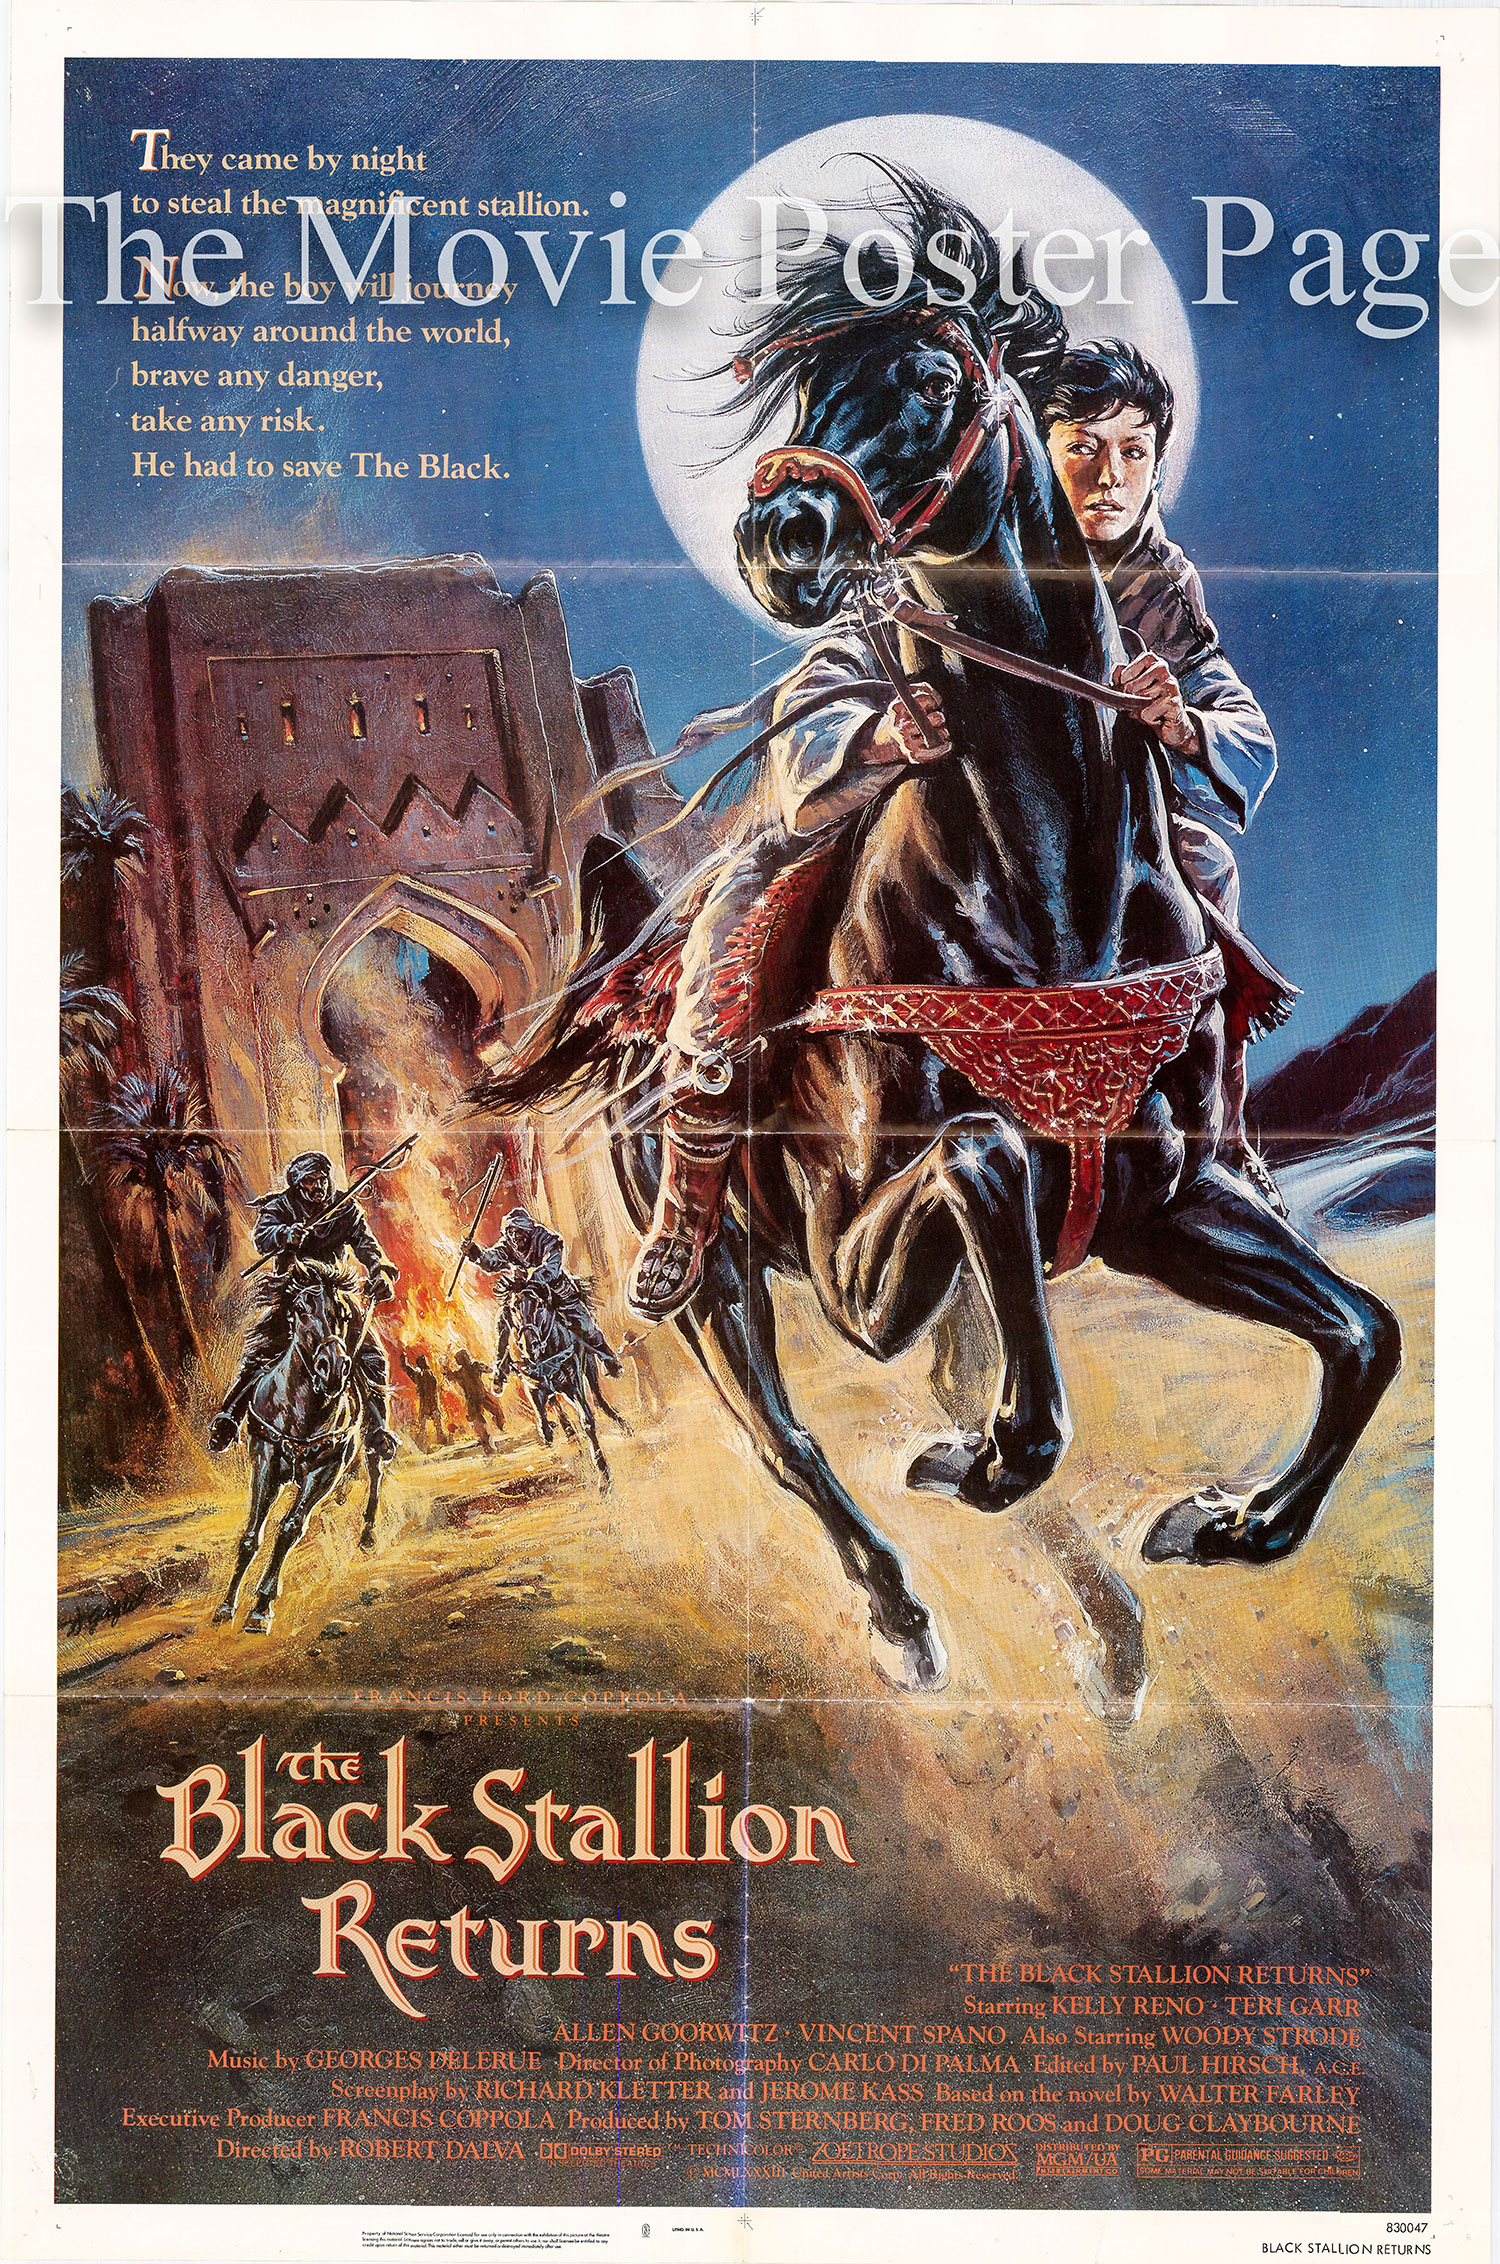 Pictured is a US one-sheet poster for the 1983 Robert Dalva film The Black Stallion Returns, starring Kelly Reno as Alec Ramsay.